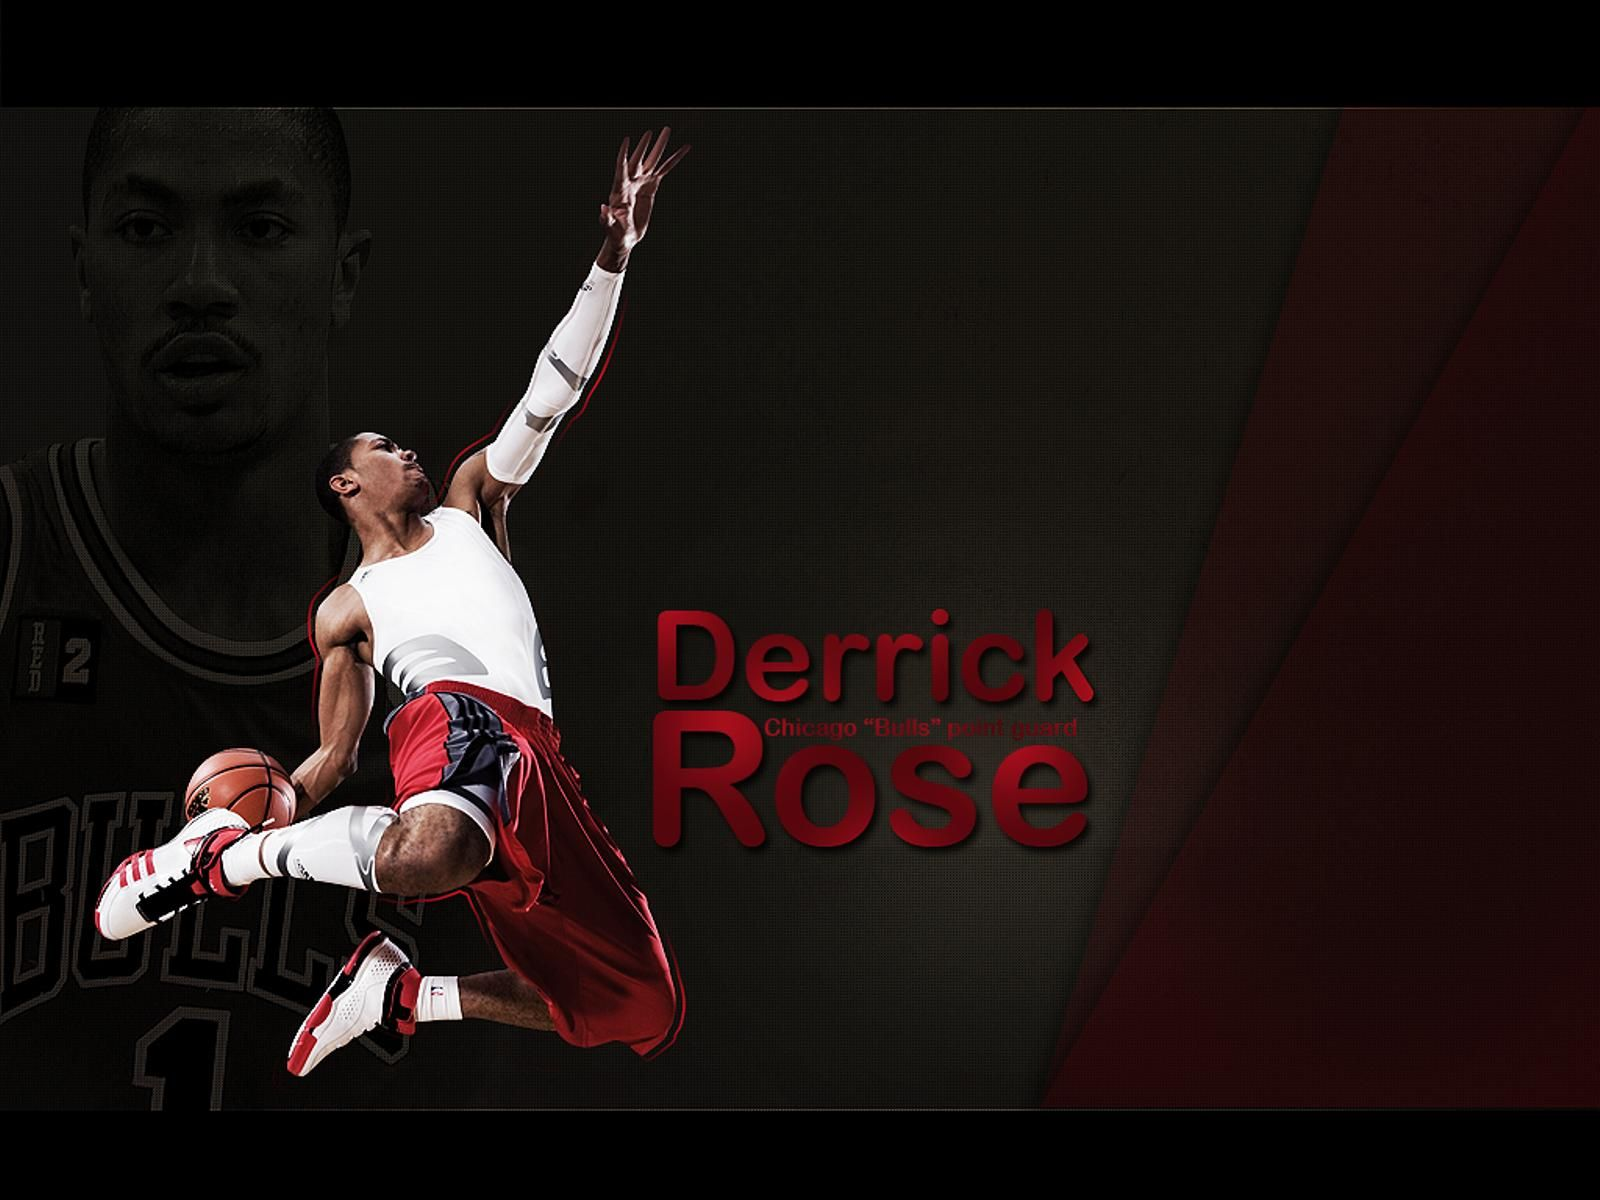 Download derrick rose live wallpaper for android by hd download derrick rose live wallpaper for android by voltagebd Image collections